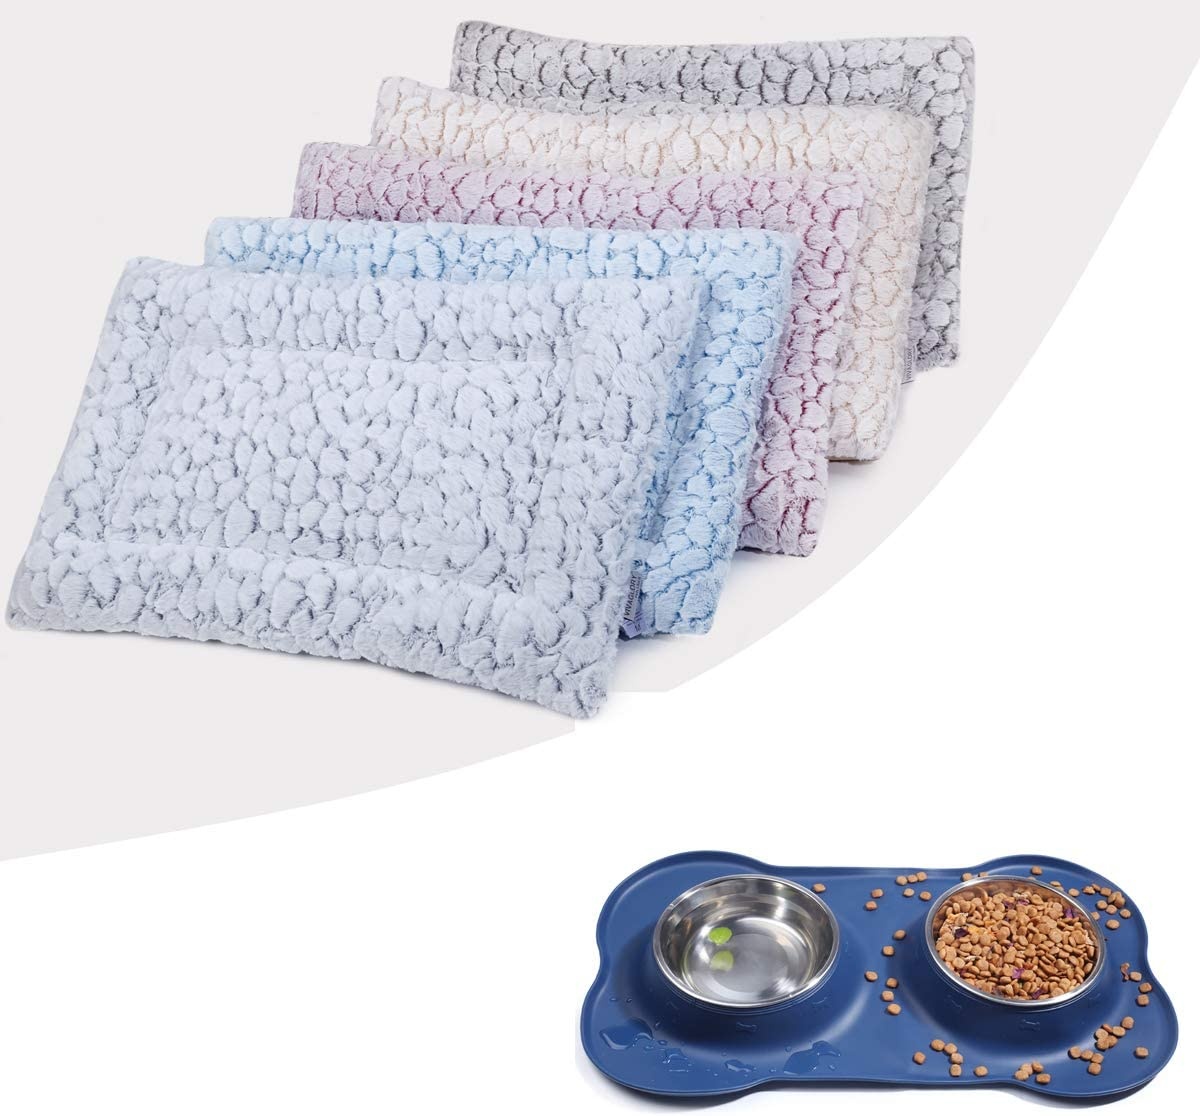 Reversible Super Soft Plush Cat Dog Bed for Crate Kennel Cage 30 x 19 Inches, Machine Washable & Dog Bowl Set